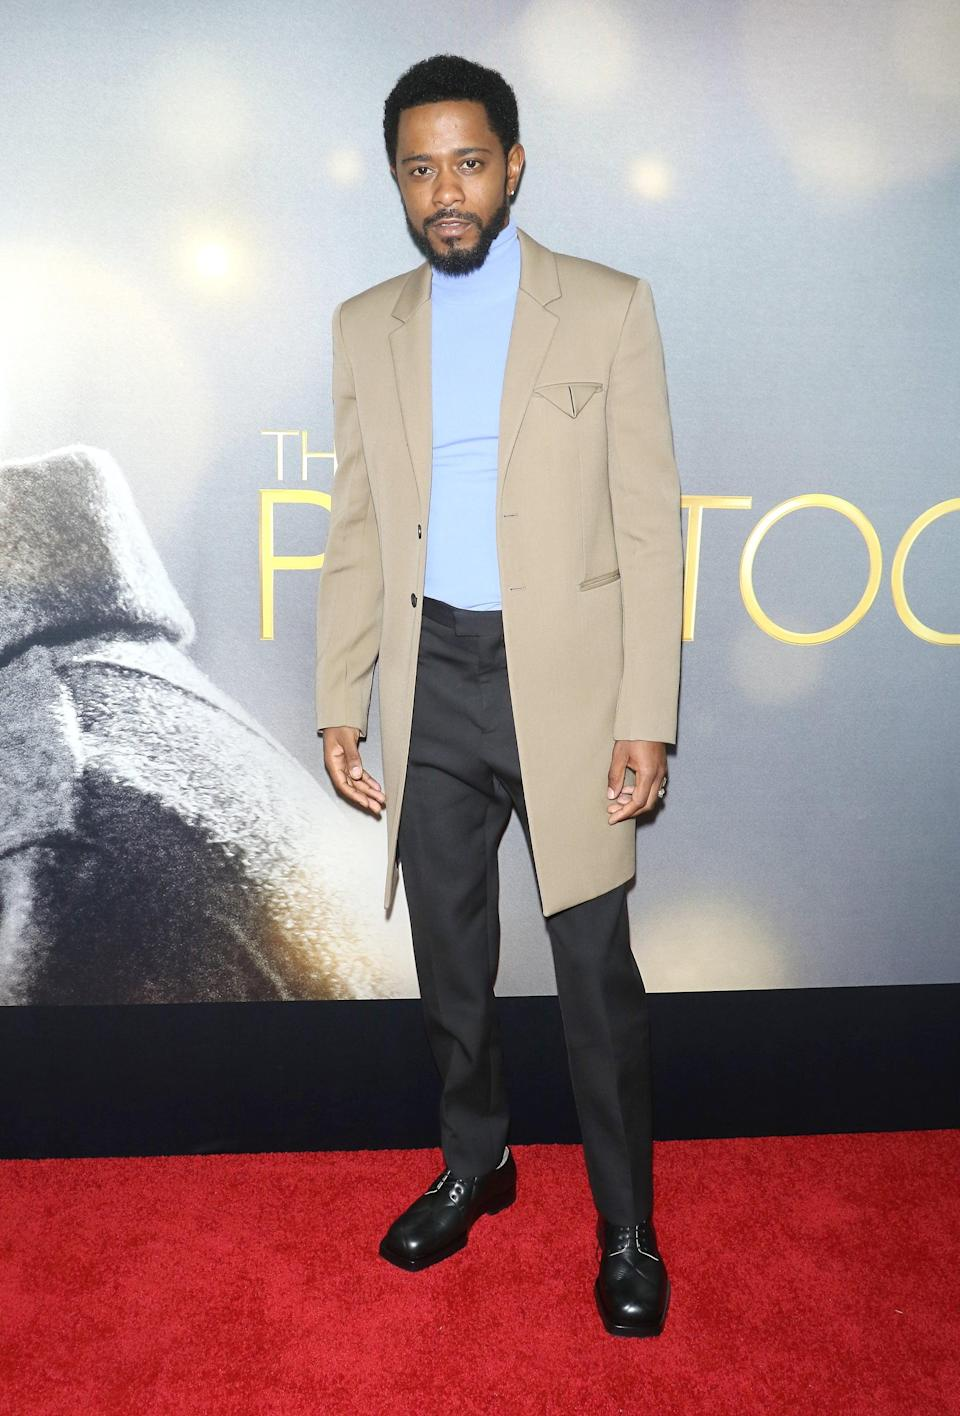 """<p>""""I don't really talk about her a lot,"""" he <a href=""""http://www.hollywoodreporter.com/features/the-tao-of-lakeith-stanfield-an-ascendant-actor-on-forging-his-own-path"""" class=""""link rapid-noclick-resp"""" rel=""""nofollow noopener"""" target=""""_blank"""" data-ylk=""""slk:told The Hollywood Reporter"""">told <strong>The Hollywood Reporter</strong></a>. He has been private about his family for a while, though. Back in 2017, he also declined to comment directly about his partner and daughter during an <a href=""""http://www.vulture.com/2017/08/lakeith-stanfield-has-the-range.html"""" class=""""link rapid-noclick-resp"""" rel=""""nofollow noopener"""" target=""""_blank"""" data-ylk=""""slk:interview with Vulture"""">interview with <strong>Vulture</strong></a>. </p>"""